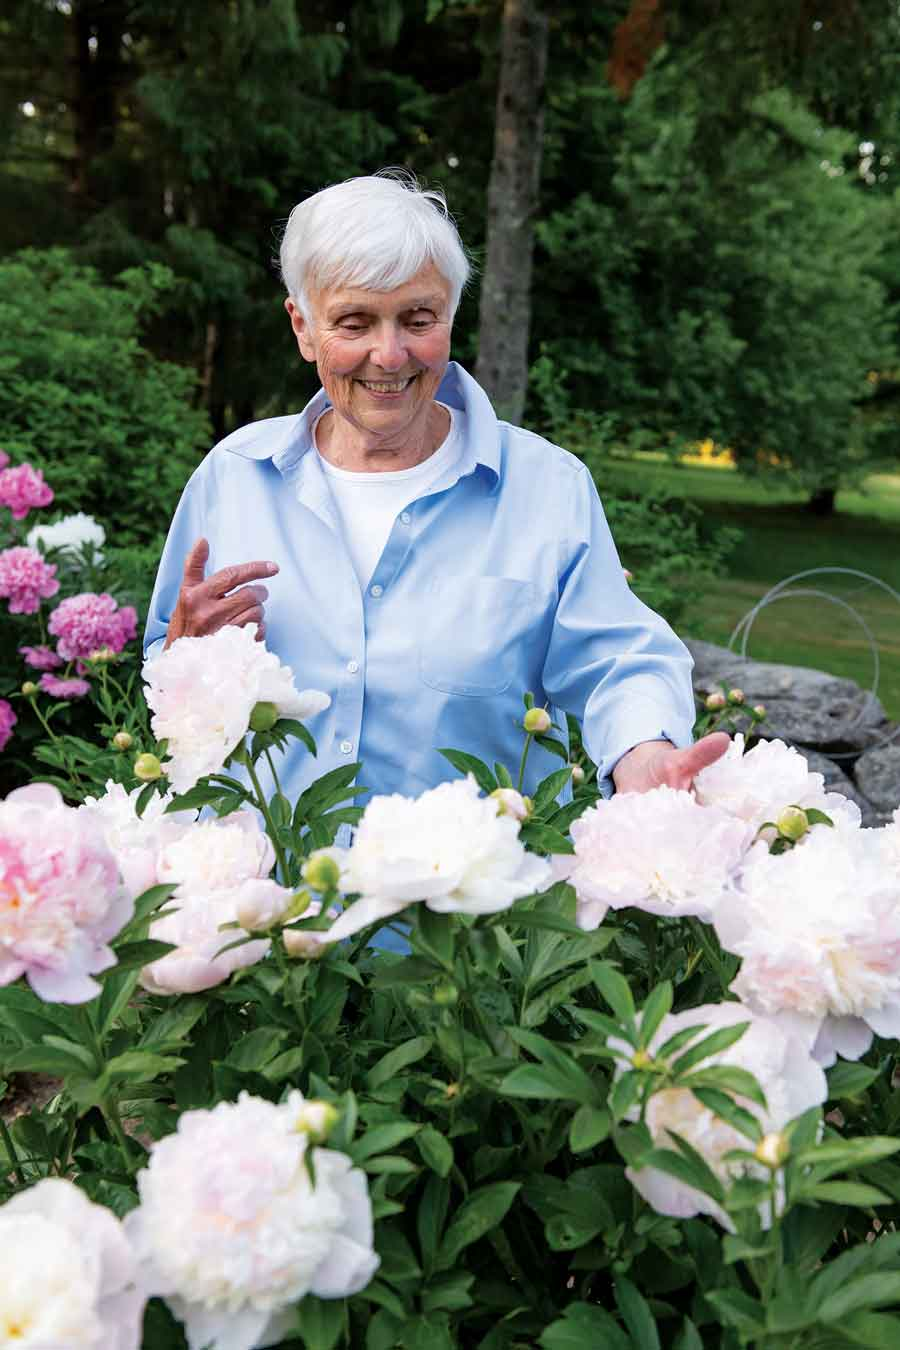 Linda Faatz takes a moment to enjoy a few of the many peonies that ring the Courtyard Garden.